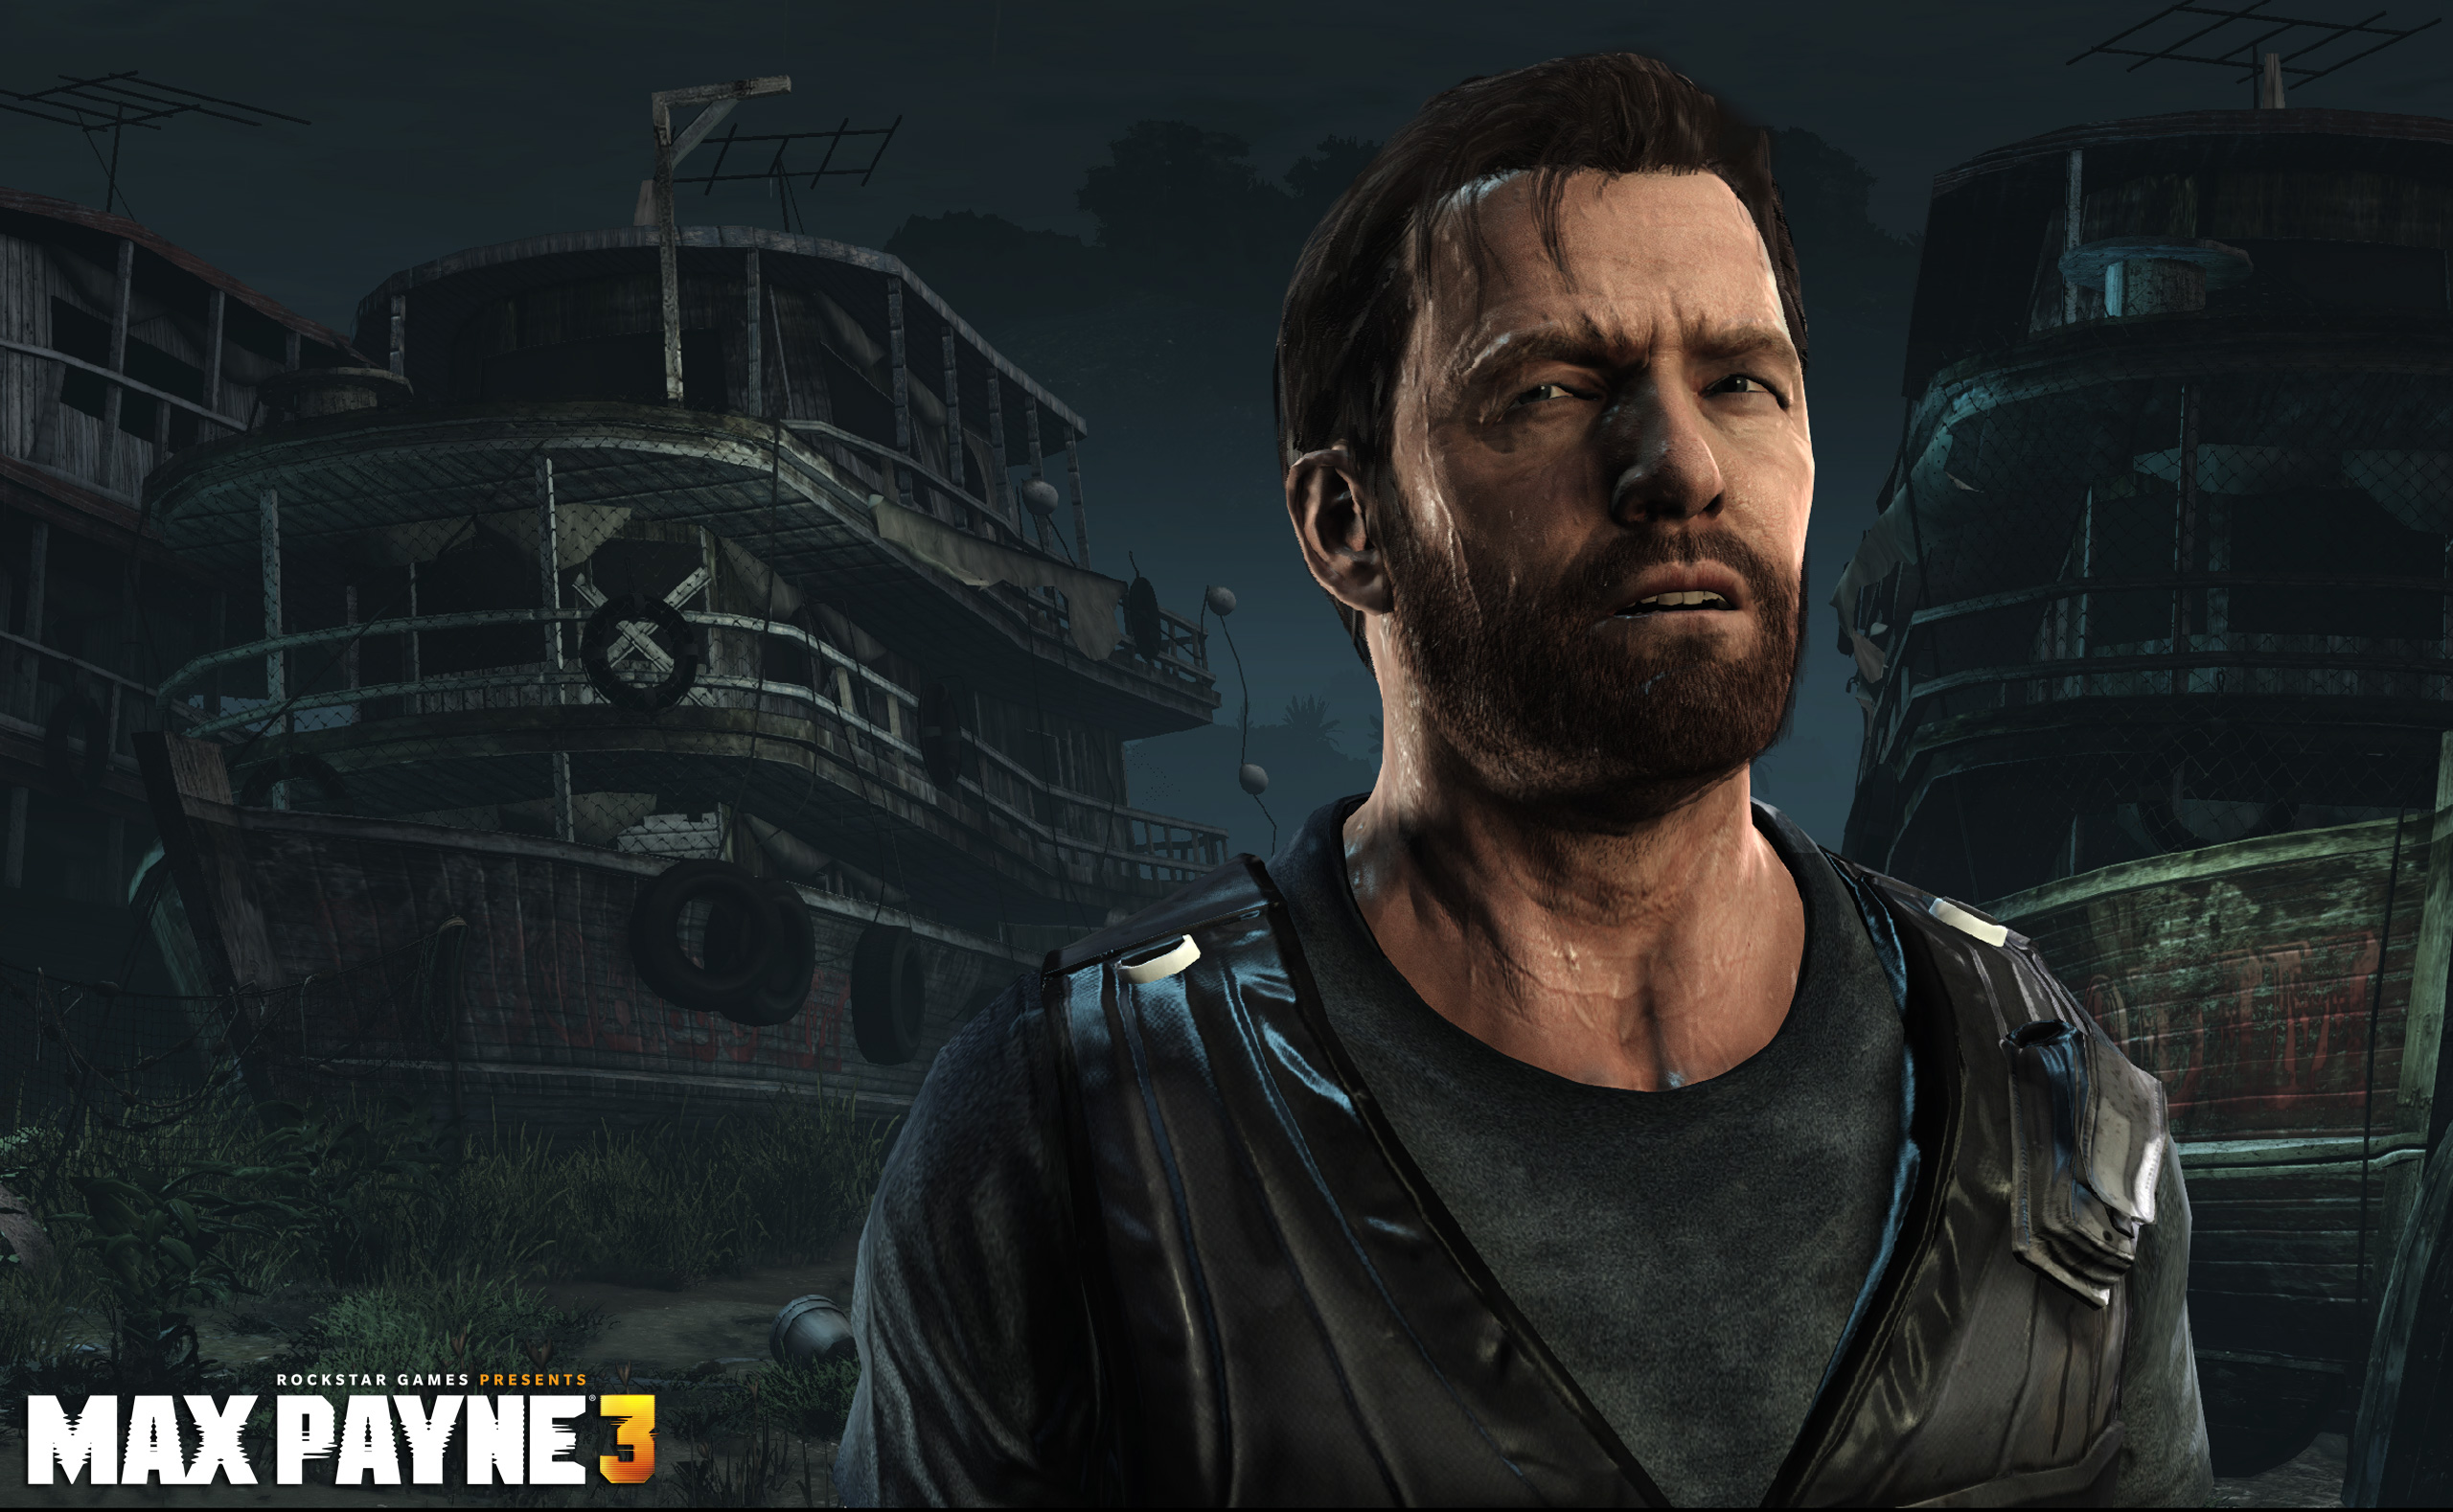 max payne 3 Speedrunning leaderboards, resources, forums, and more.